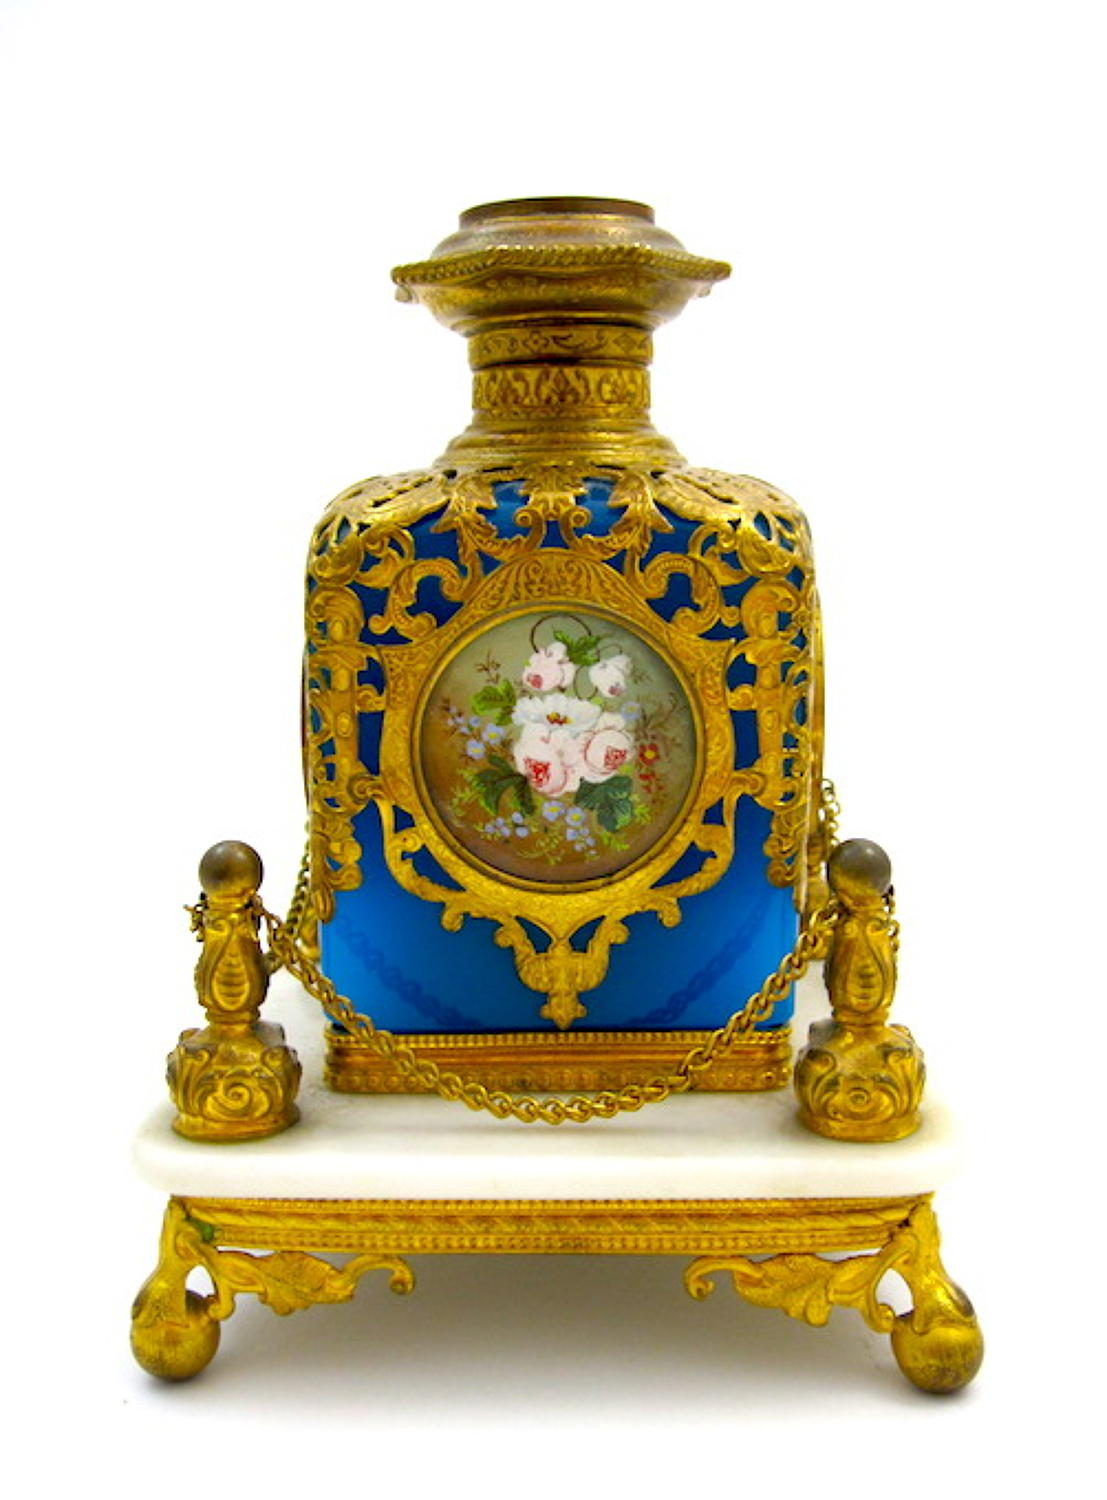 Antique Palais Royal Perfume Bottle and Stand